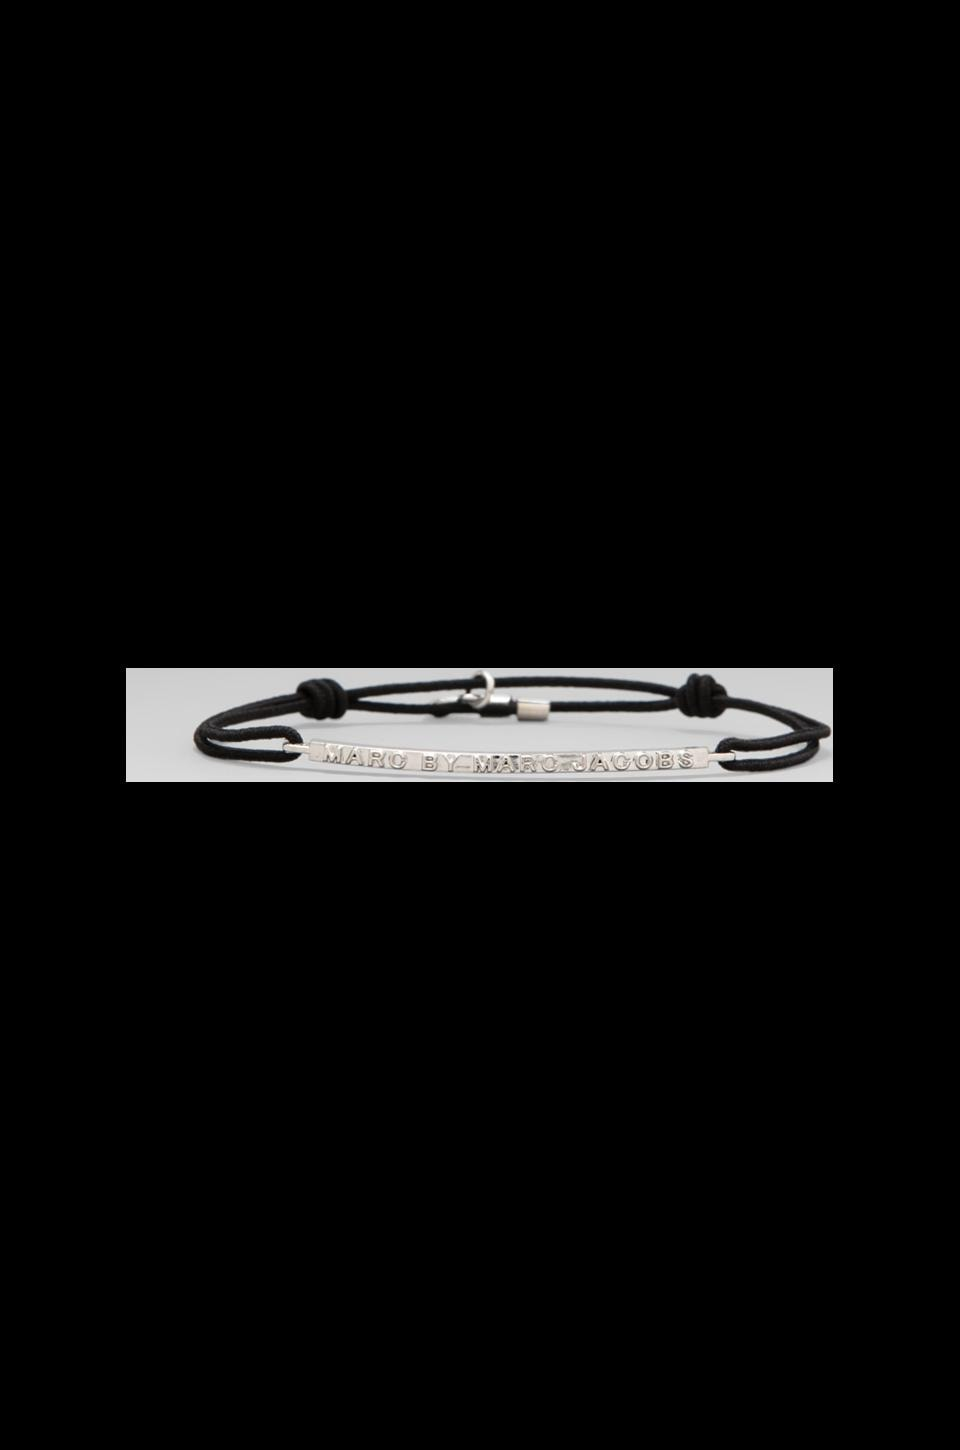 Marc by Marc Jacobs Letterpress Friendship Bracelet in Bauhaus Black/Argento